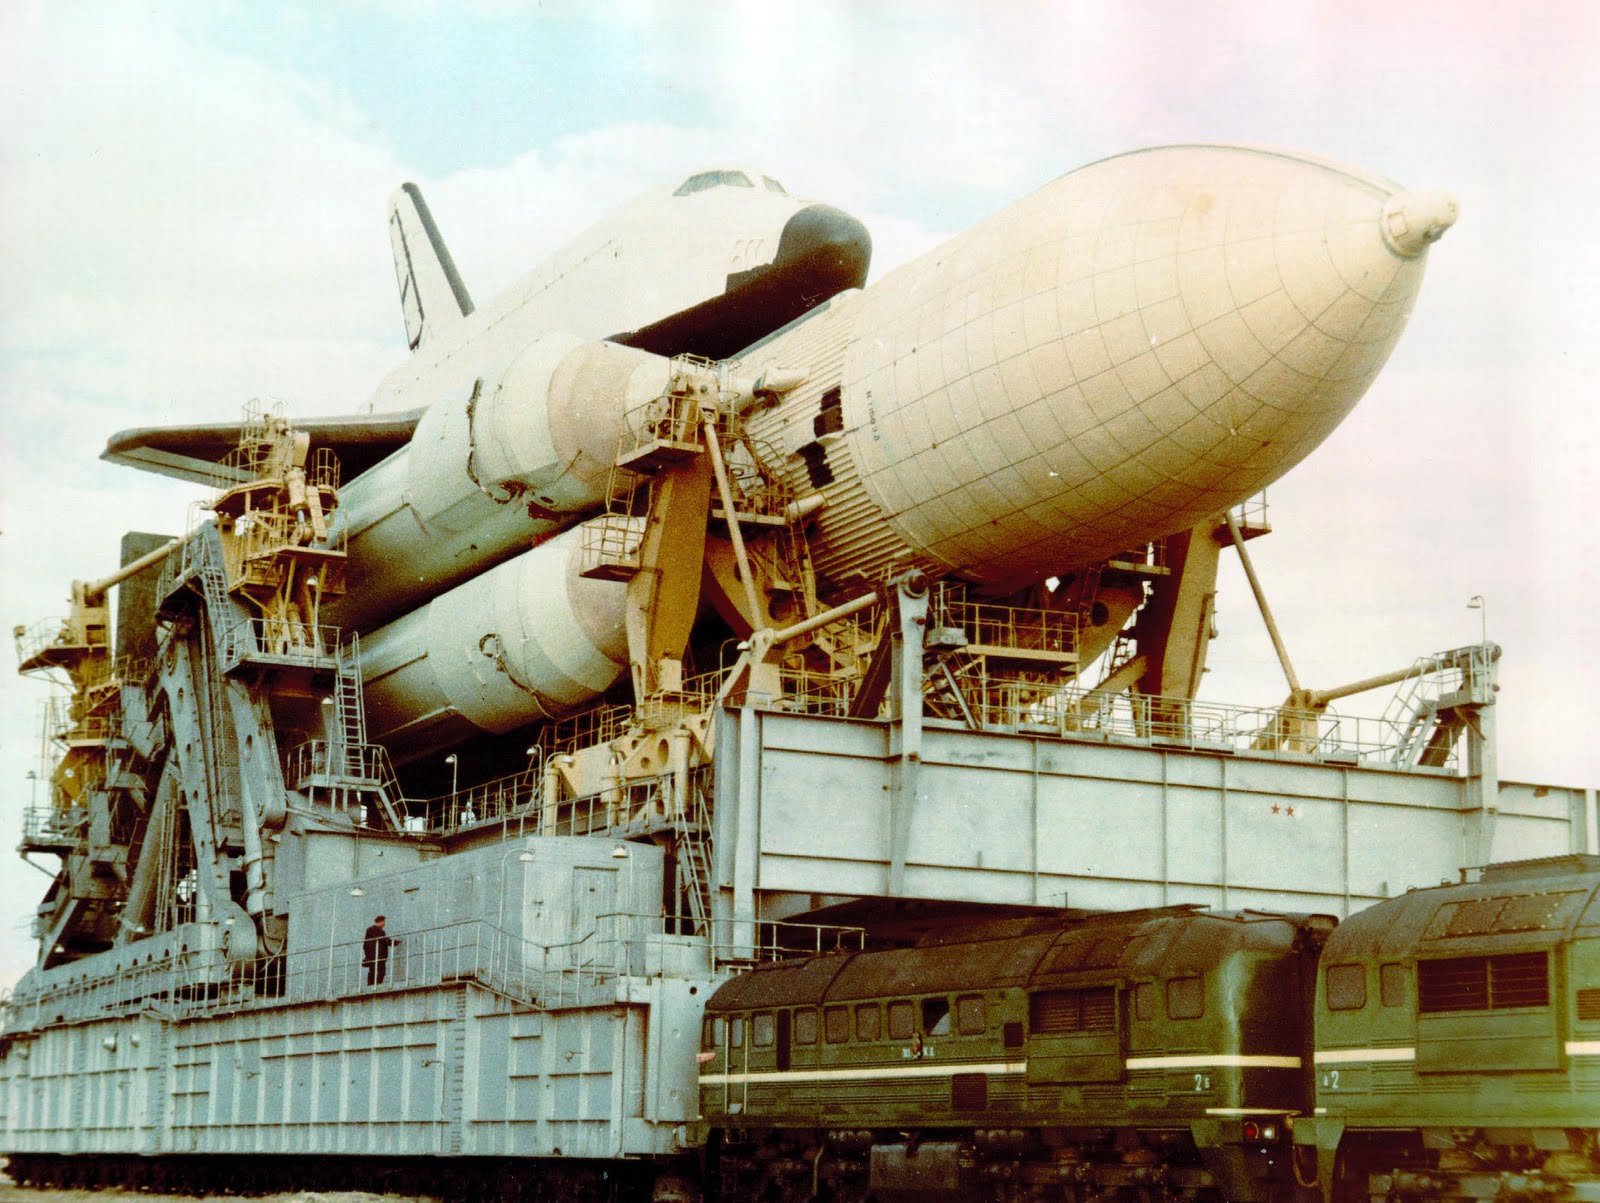 Daily Lazy Buran Russian Space Shuttle